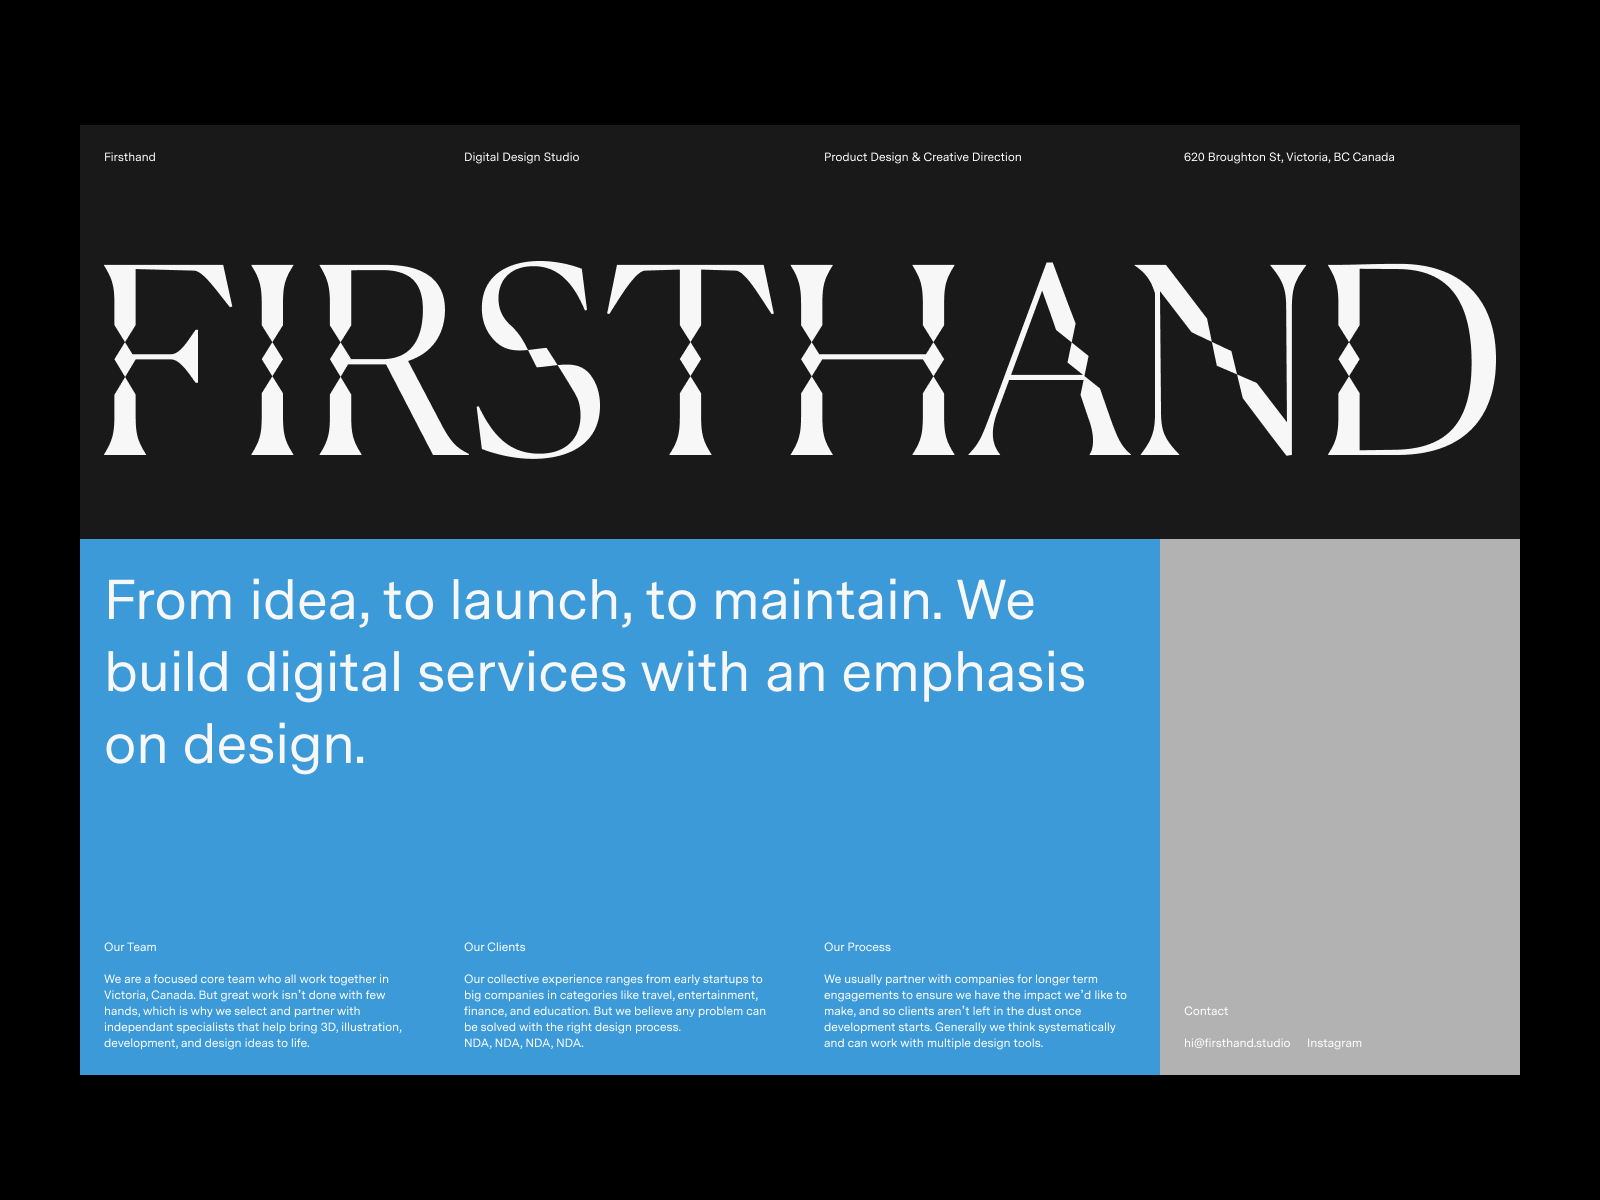 Firsthand landing page design